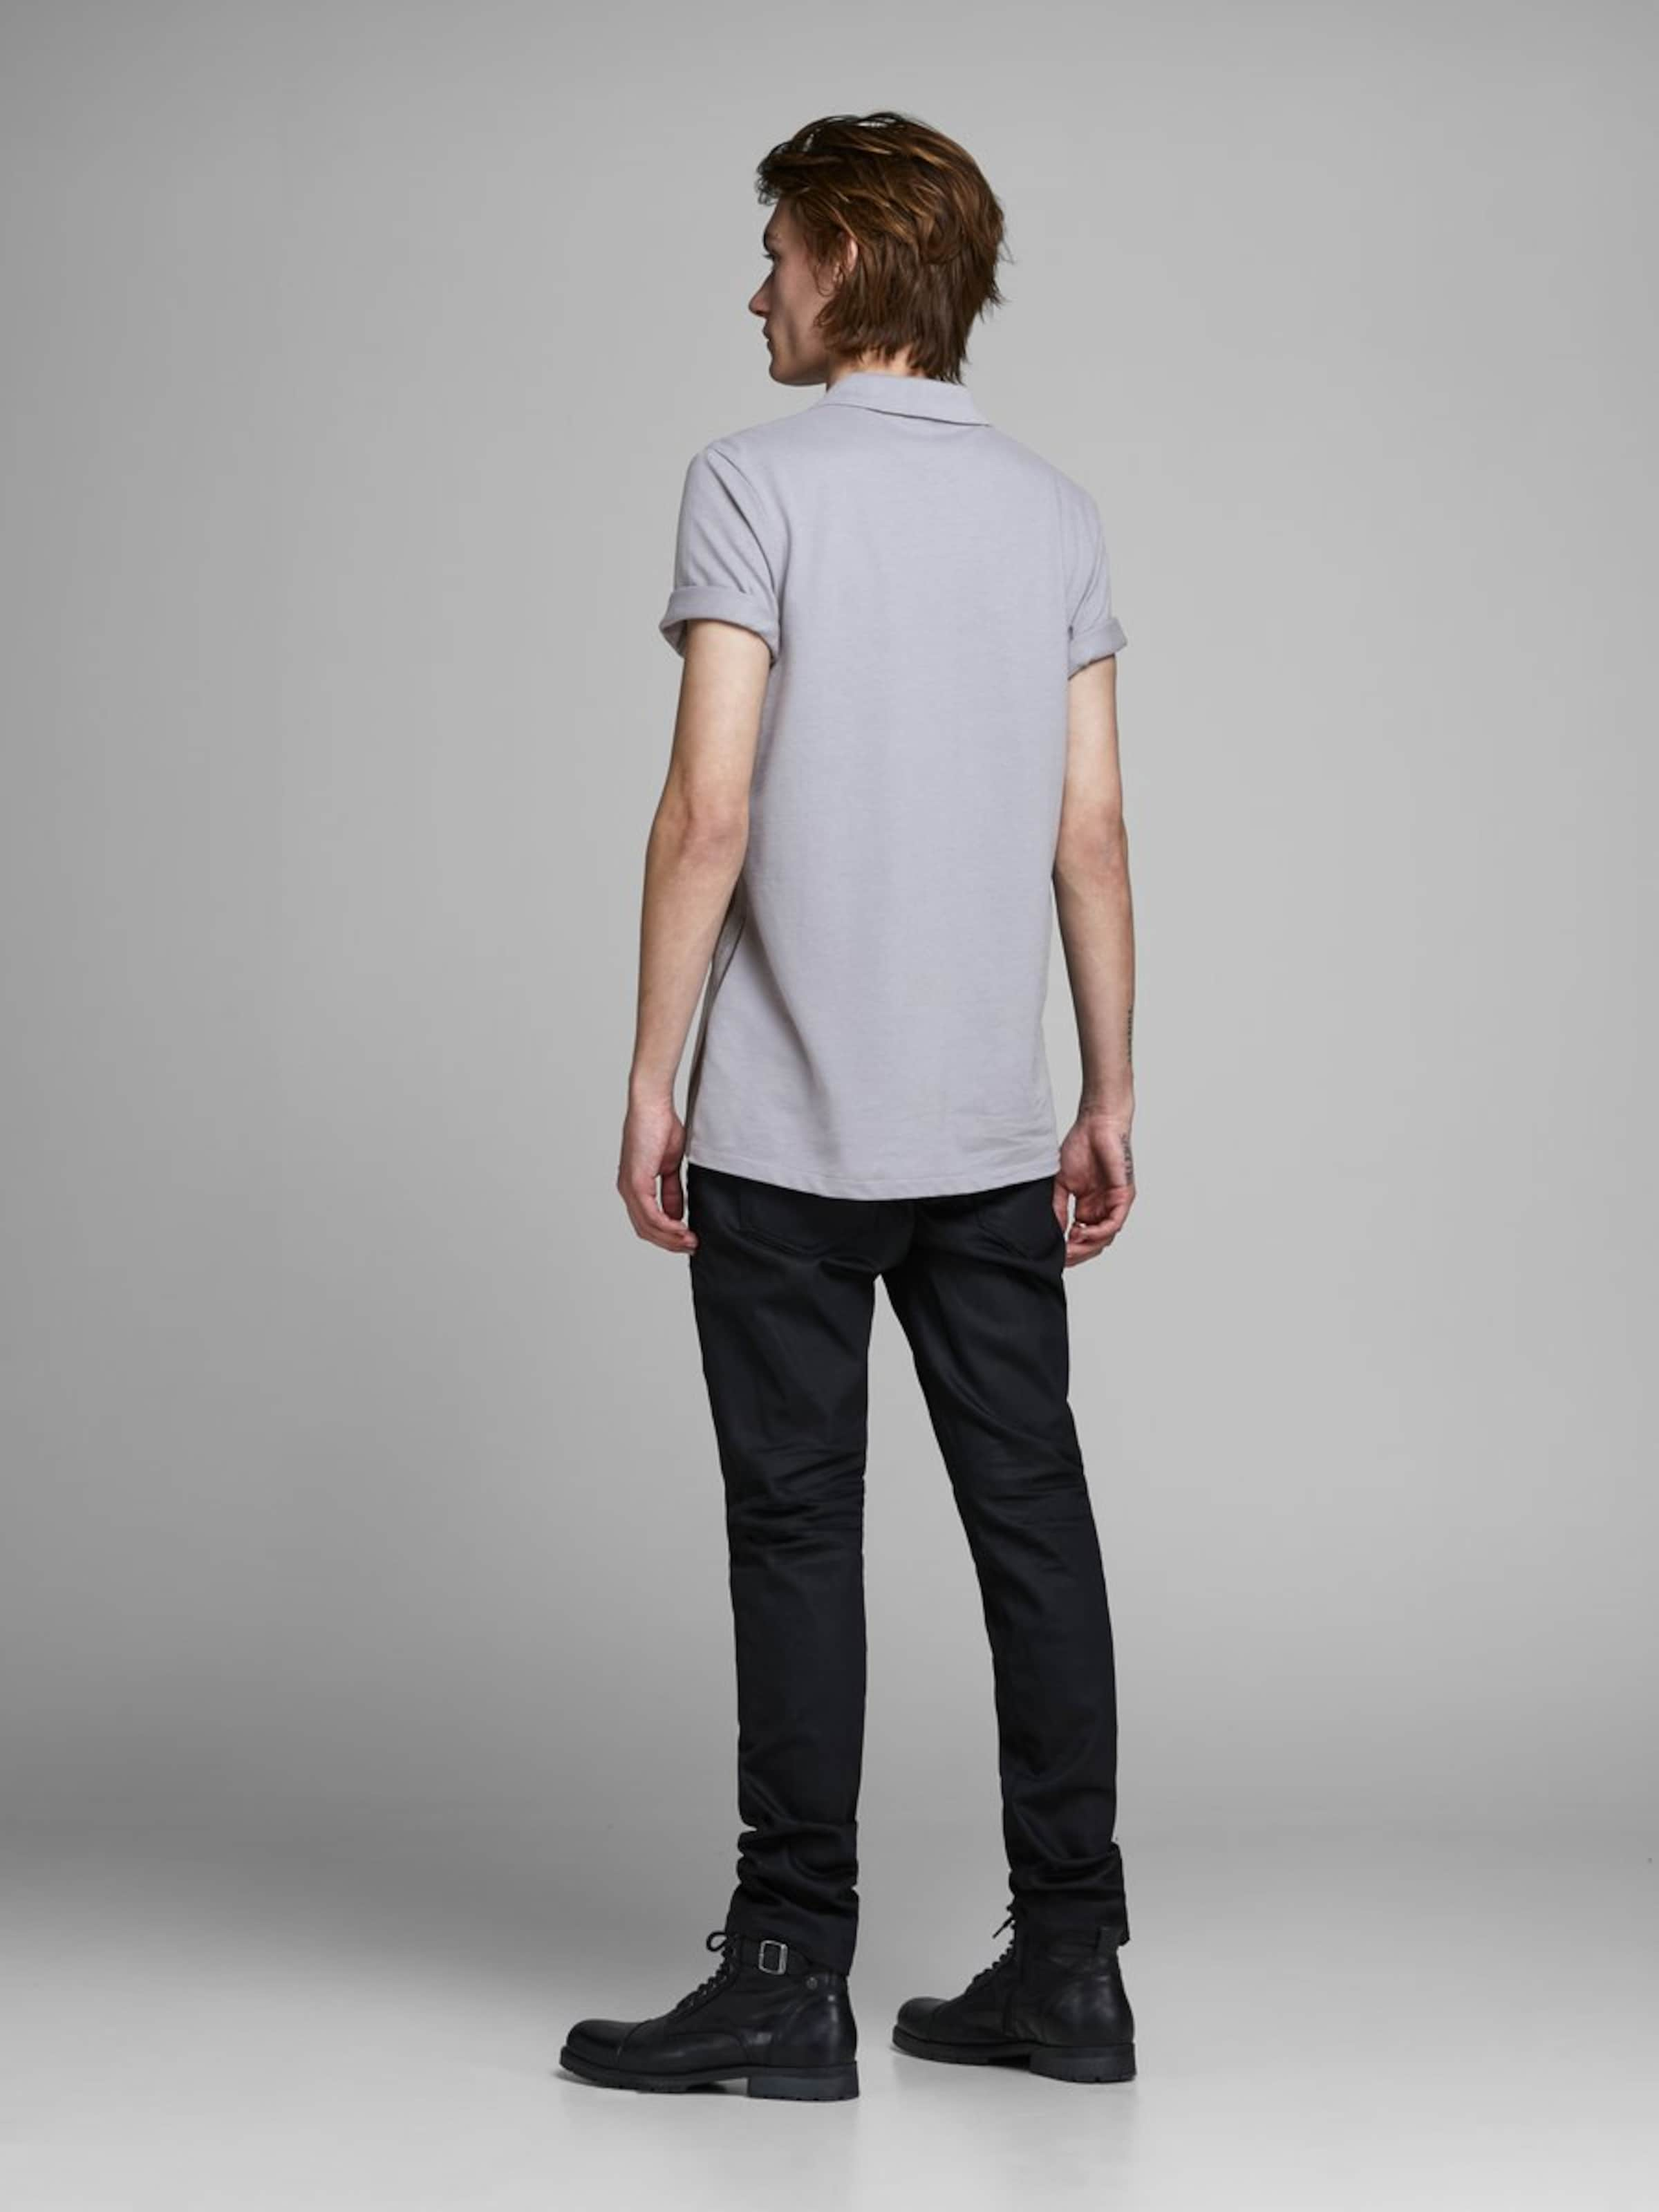 shirt Jackamp; En Jones T Gris kiXZuP